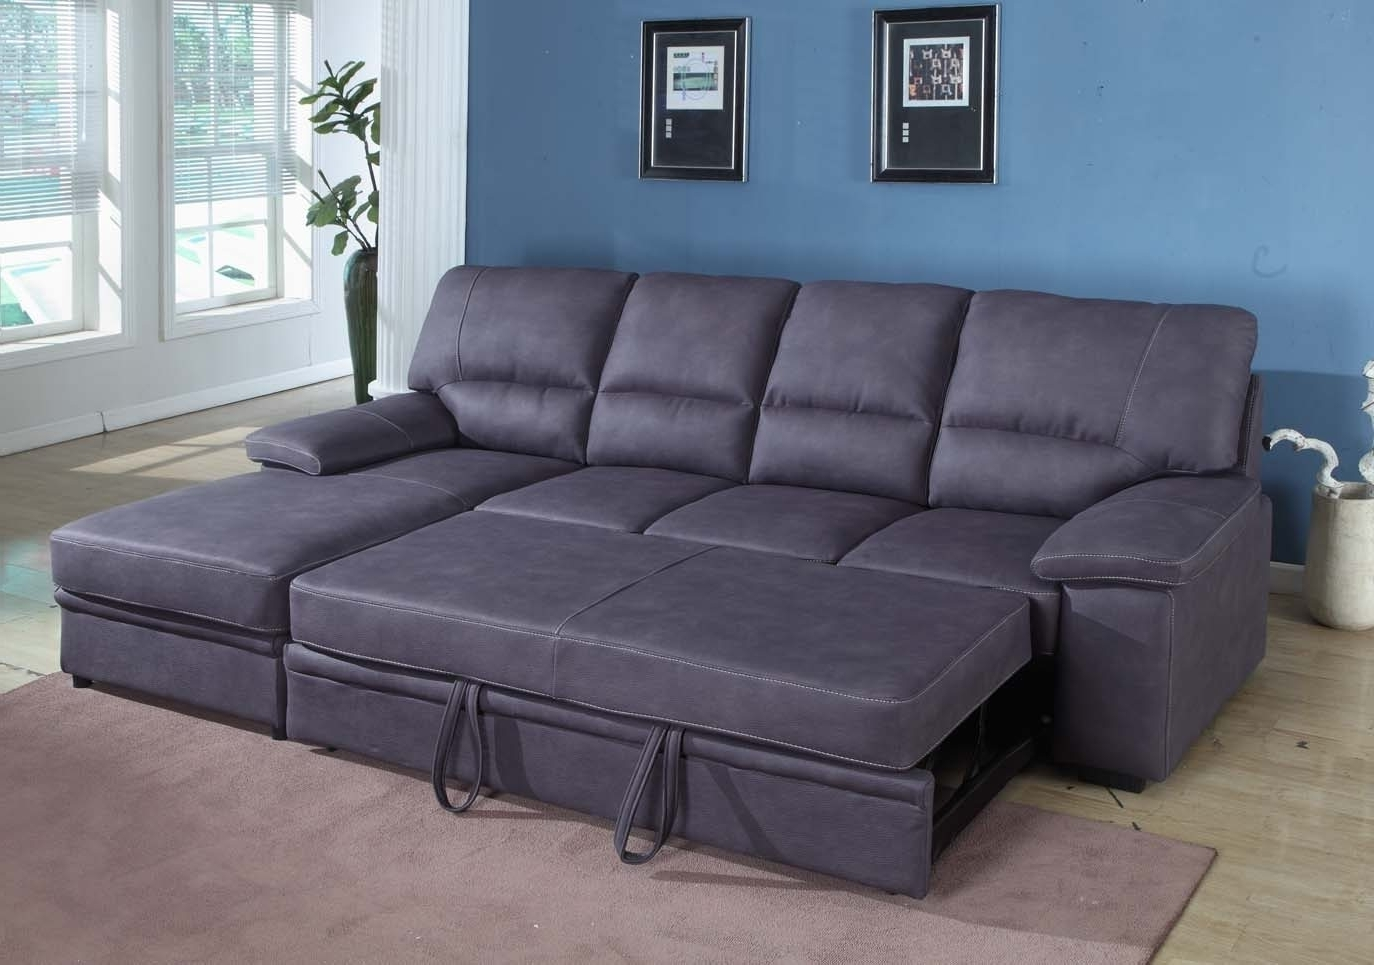 Recent Sectional Sofas That Turn Into Beds Throughout Sofa : Double Size Sleeper Sofa Cheap Pull Out Couch Bed Pull Out (View 11 of 20)